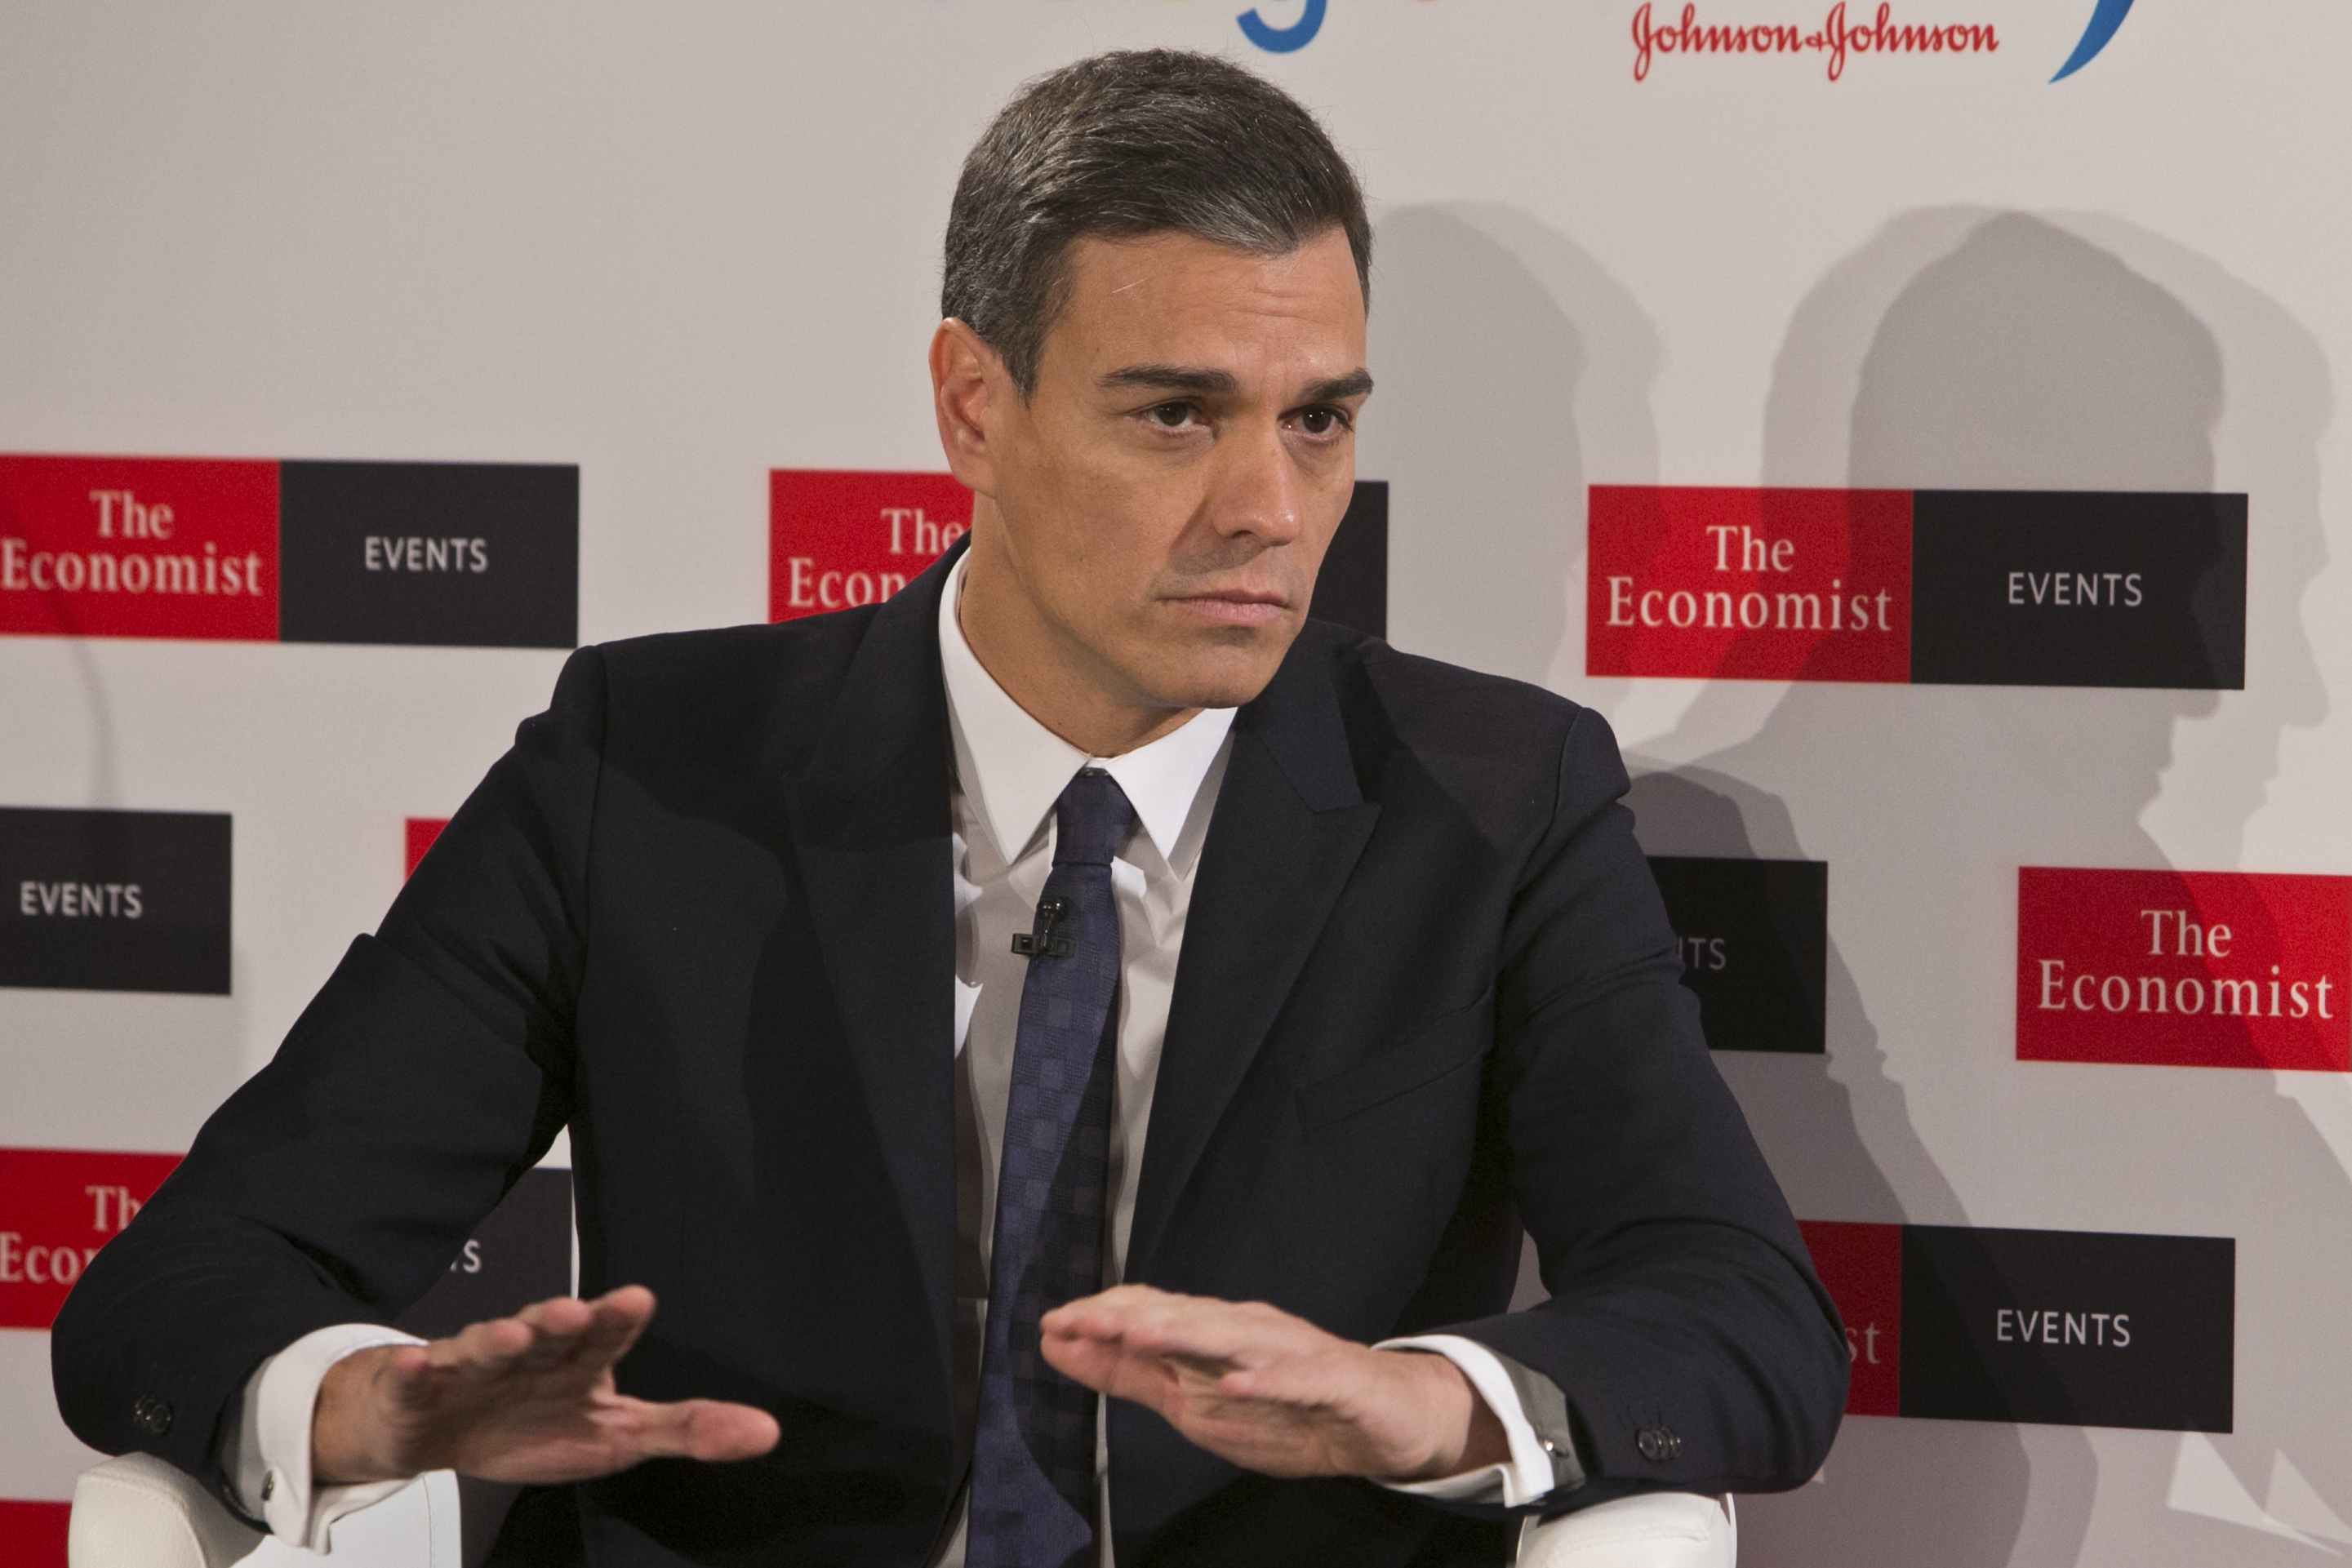 May Gets Rebellion Reprieve But Faces Warning From Allies Dont Andrew Smith Classic Formal Shirt Cokelat S Spains Prime Minister Pedro Sanchez Speaks During A Conference Organised By The Economist In